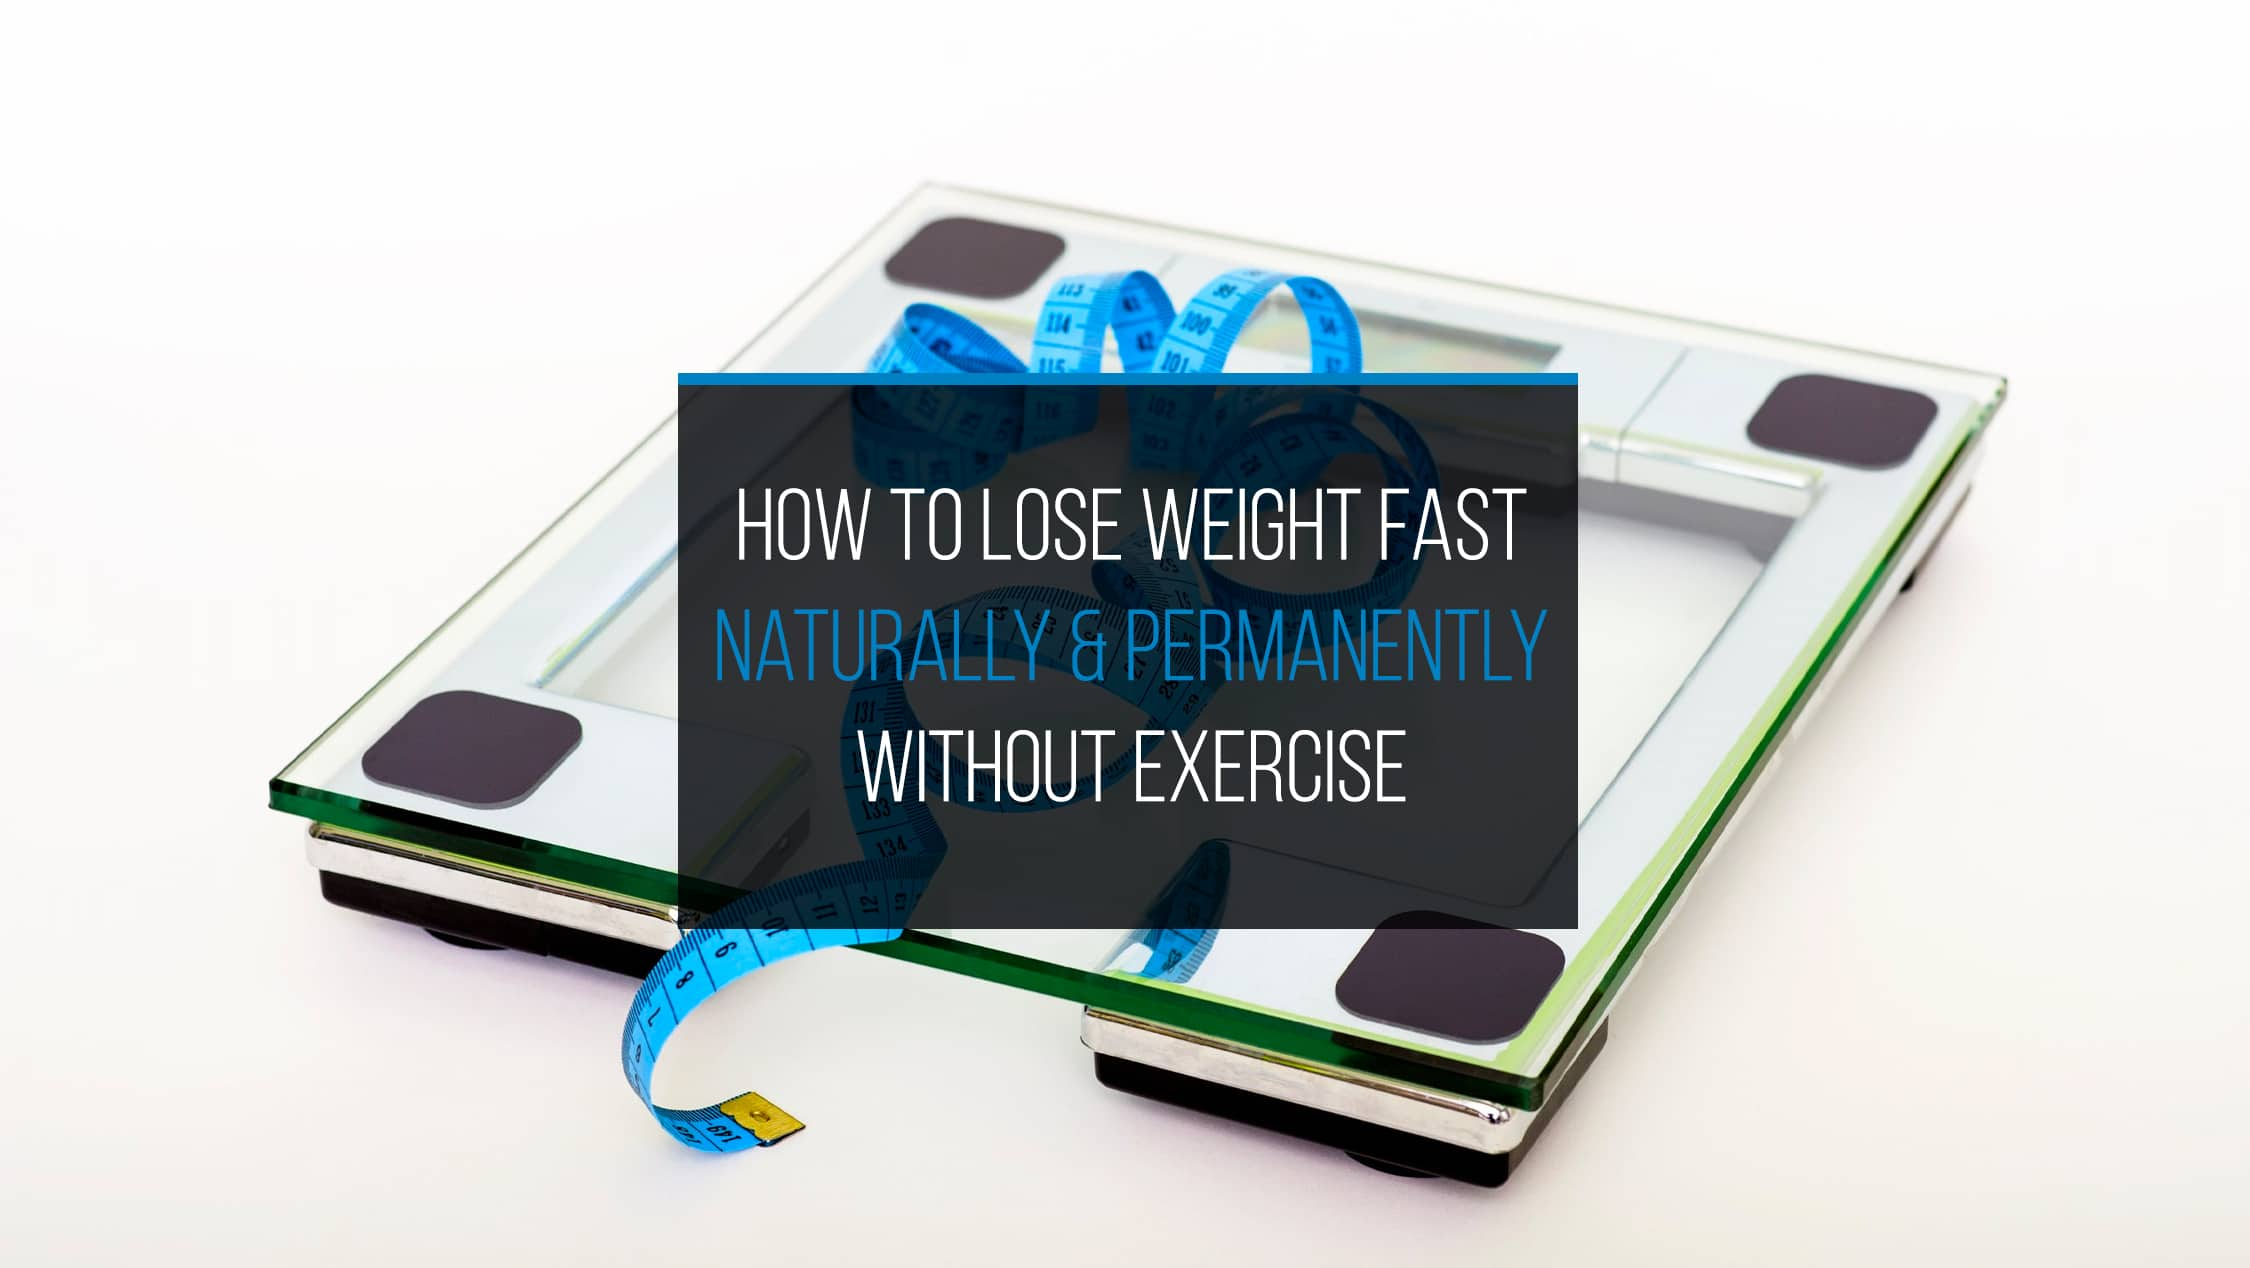 How to Lose Weight Fast Naturally & Permanently Without Exercise